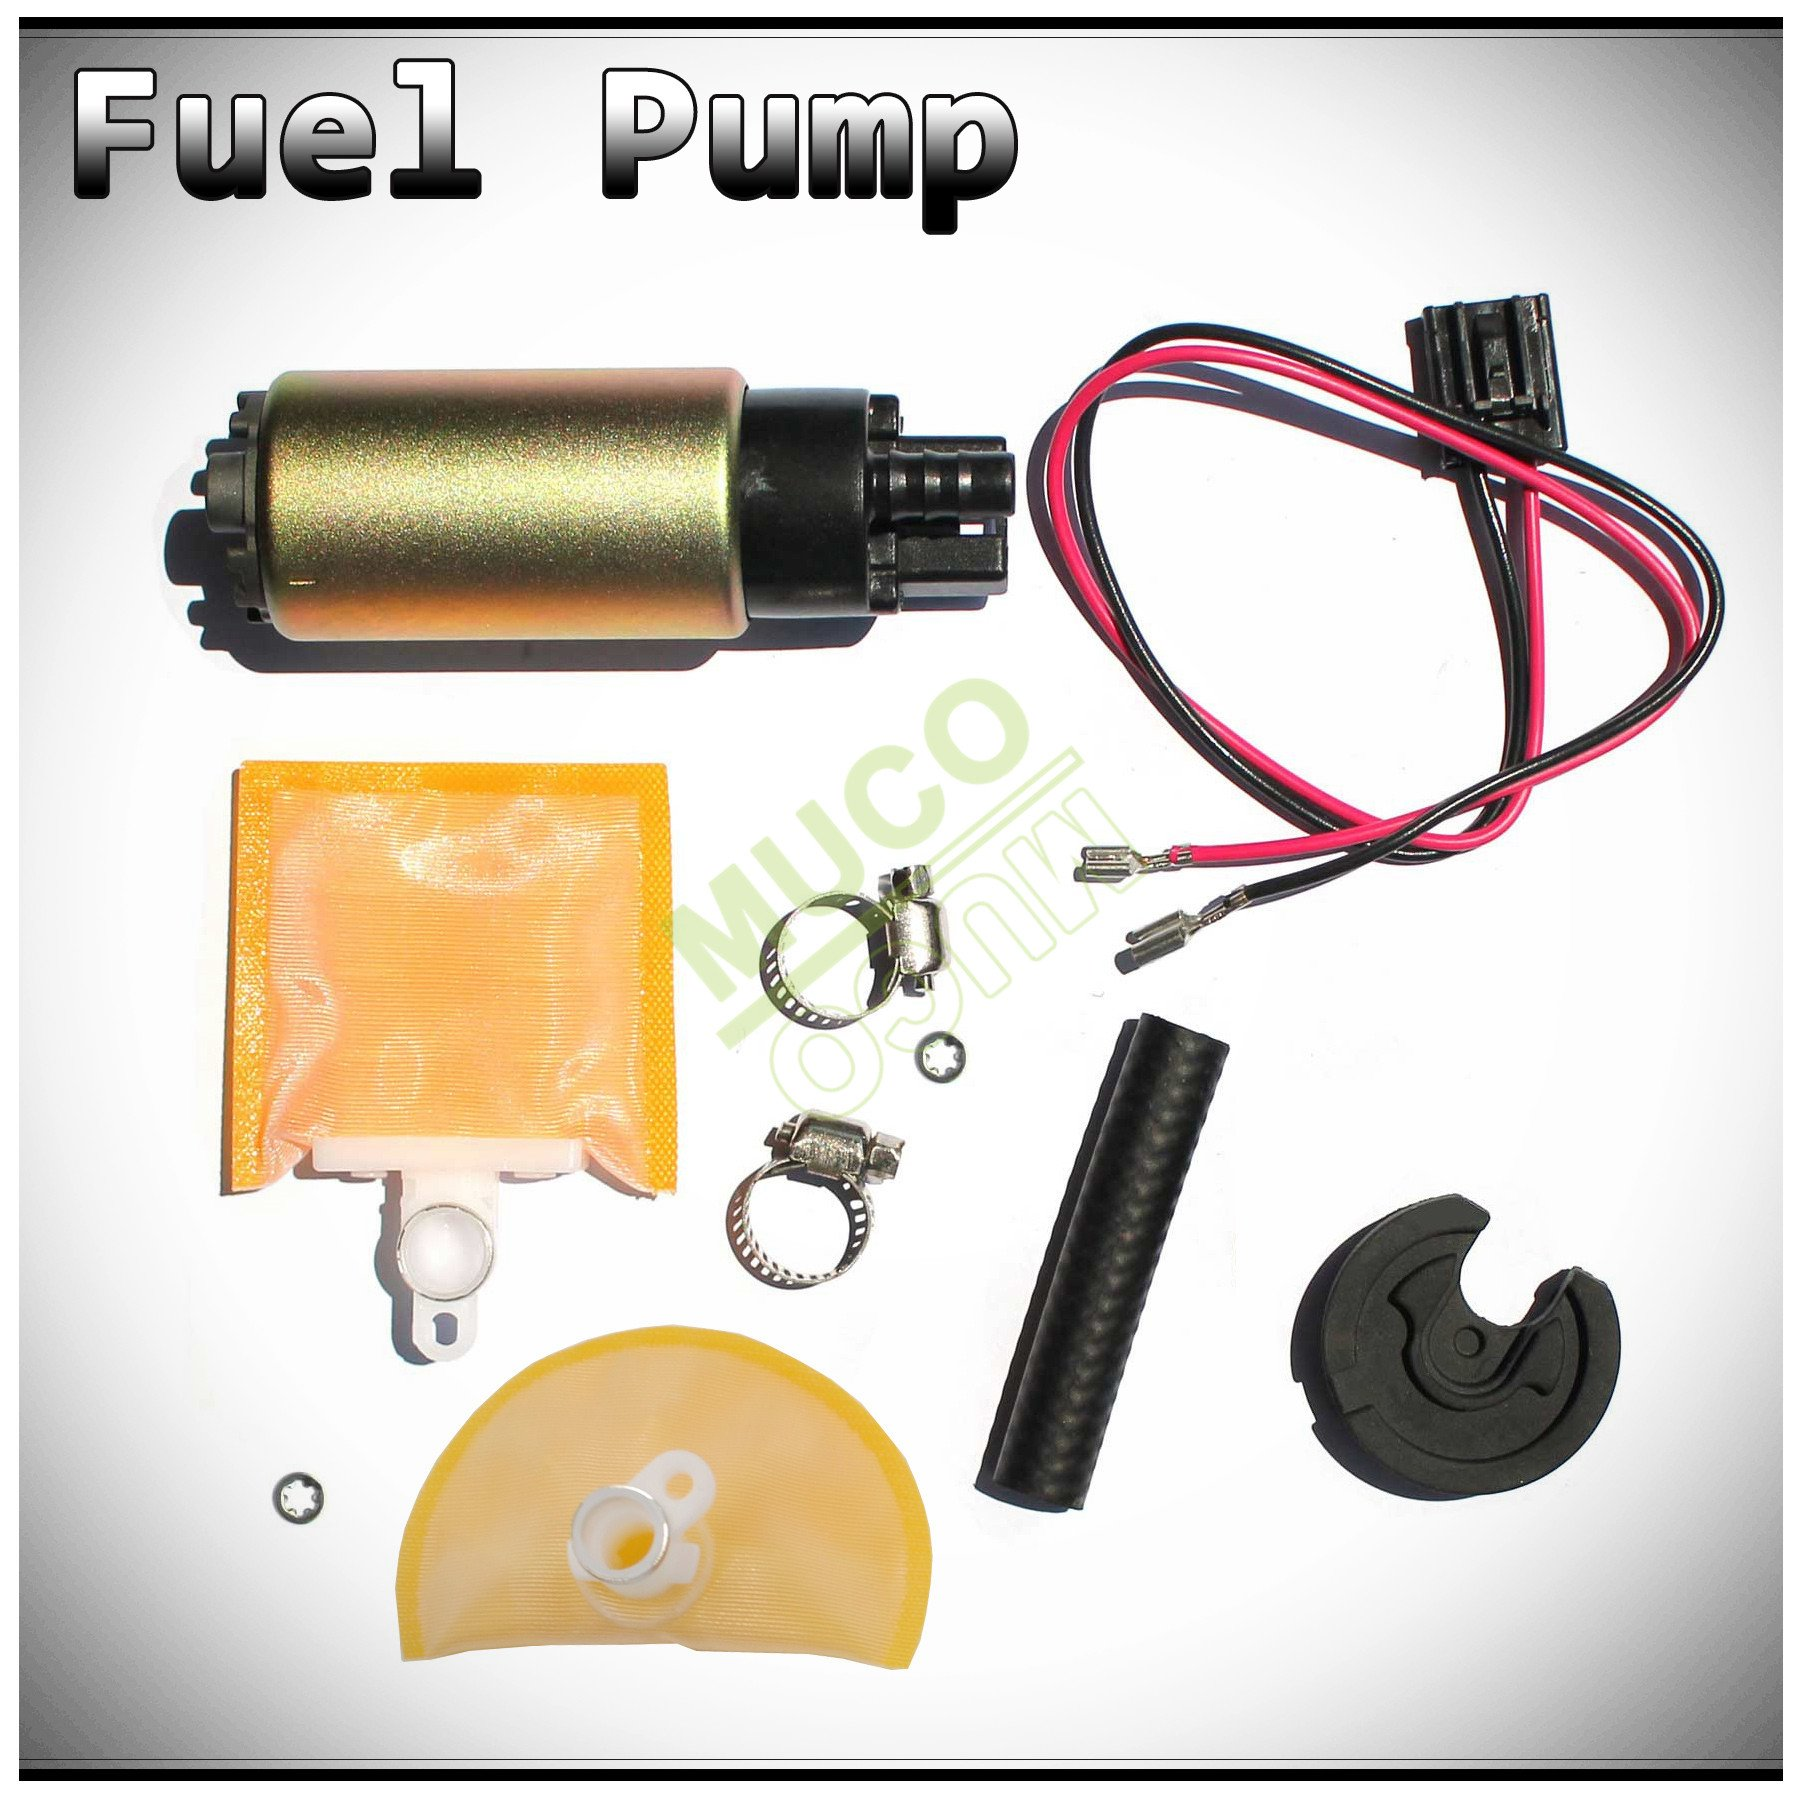 2006 hyundai sonata fuel pump amazon commuco new 1pc high performance electric gas intank efi fuel pump with strainer filter